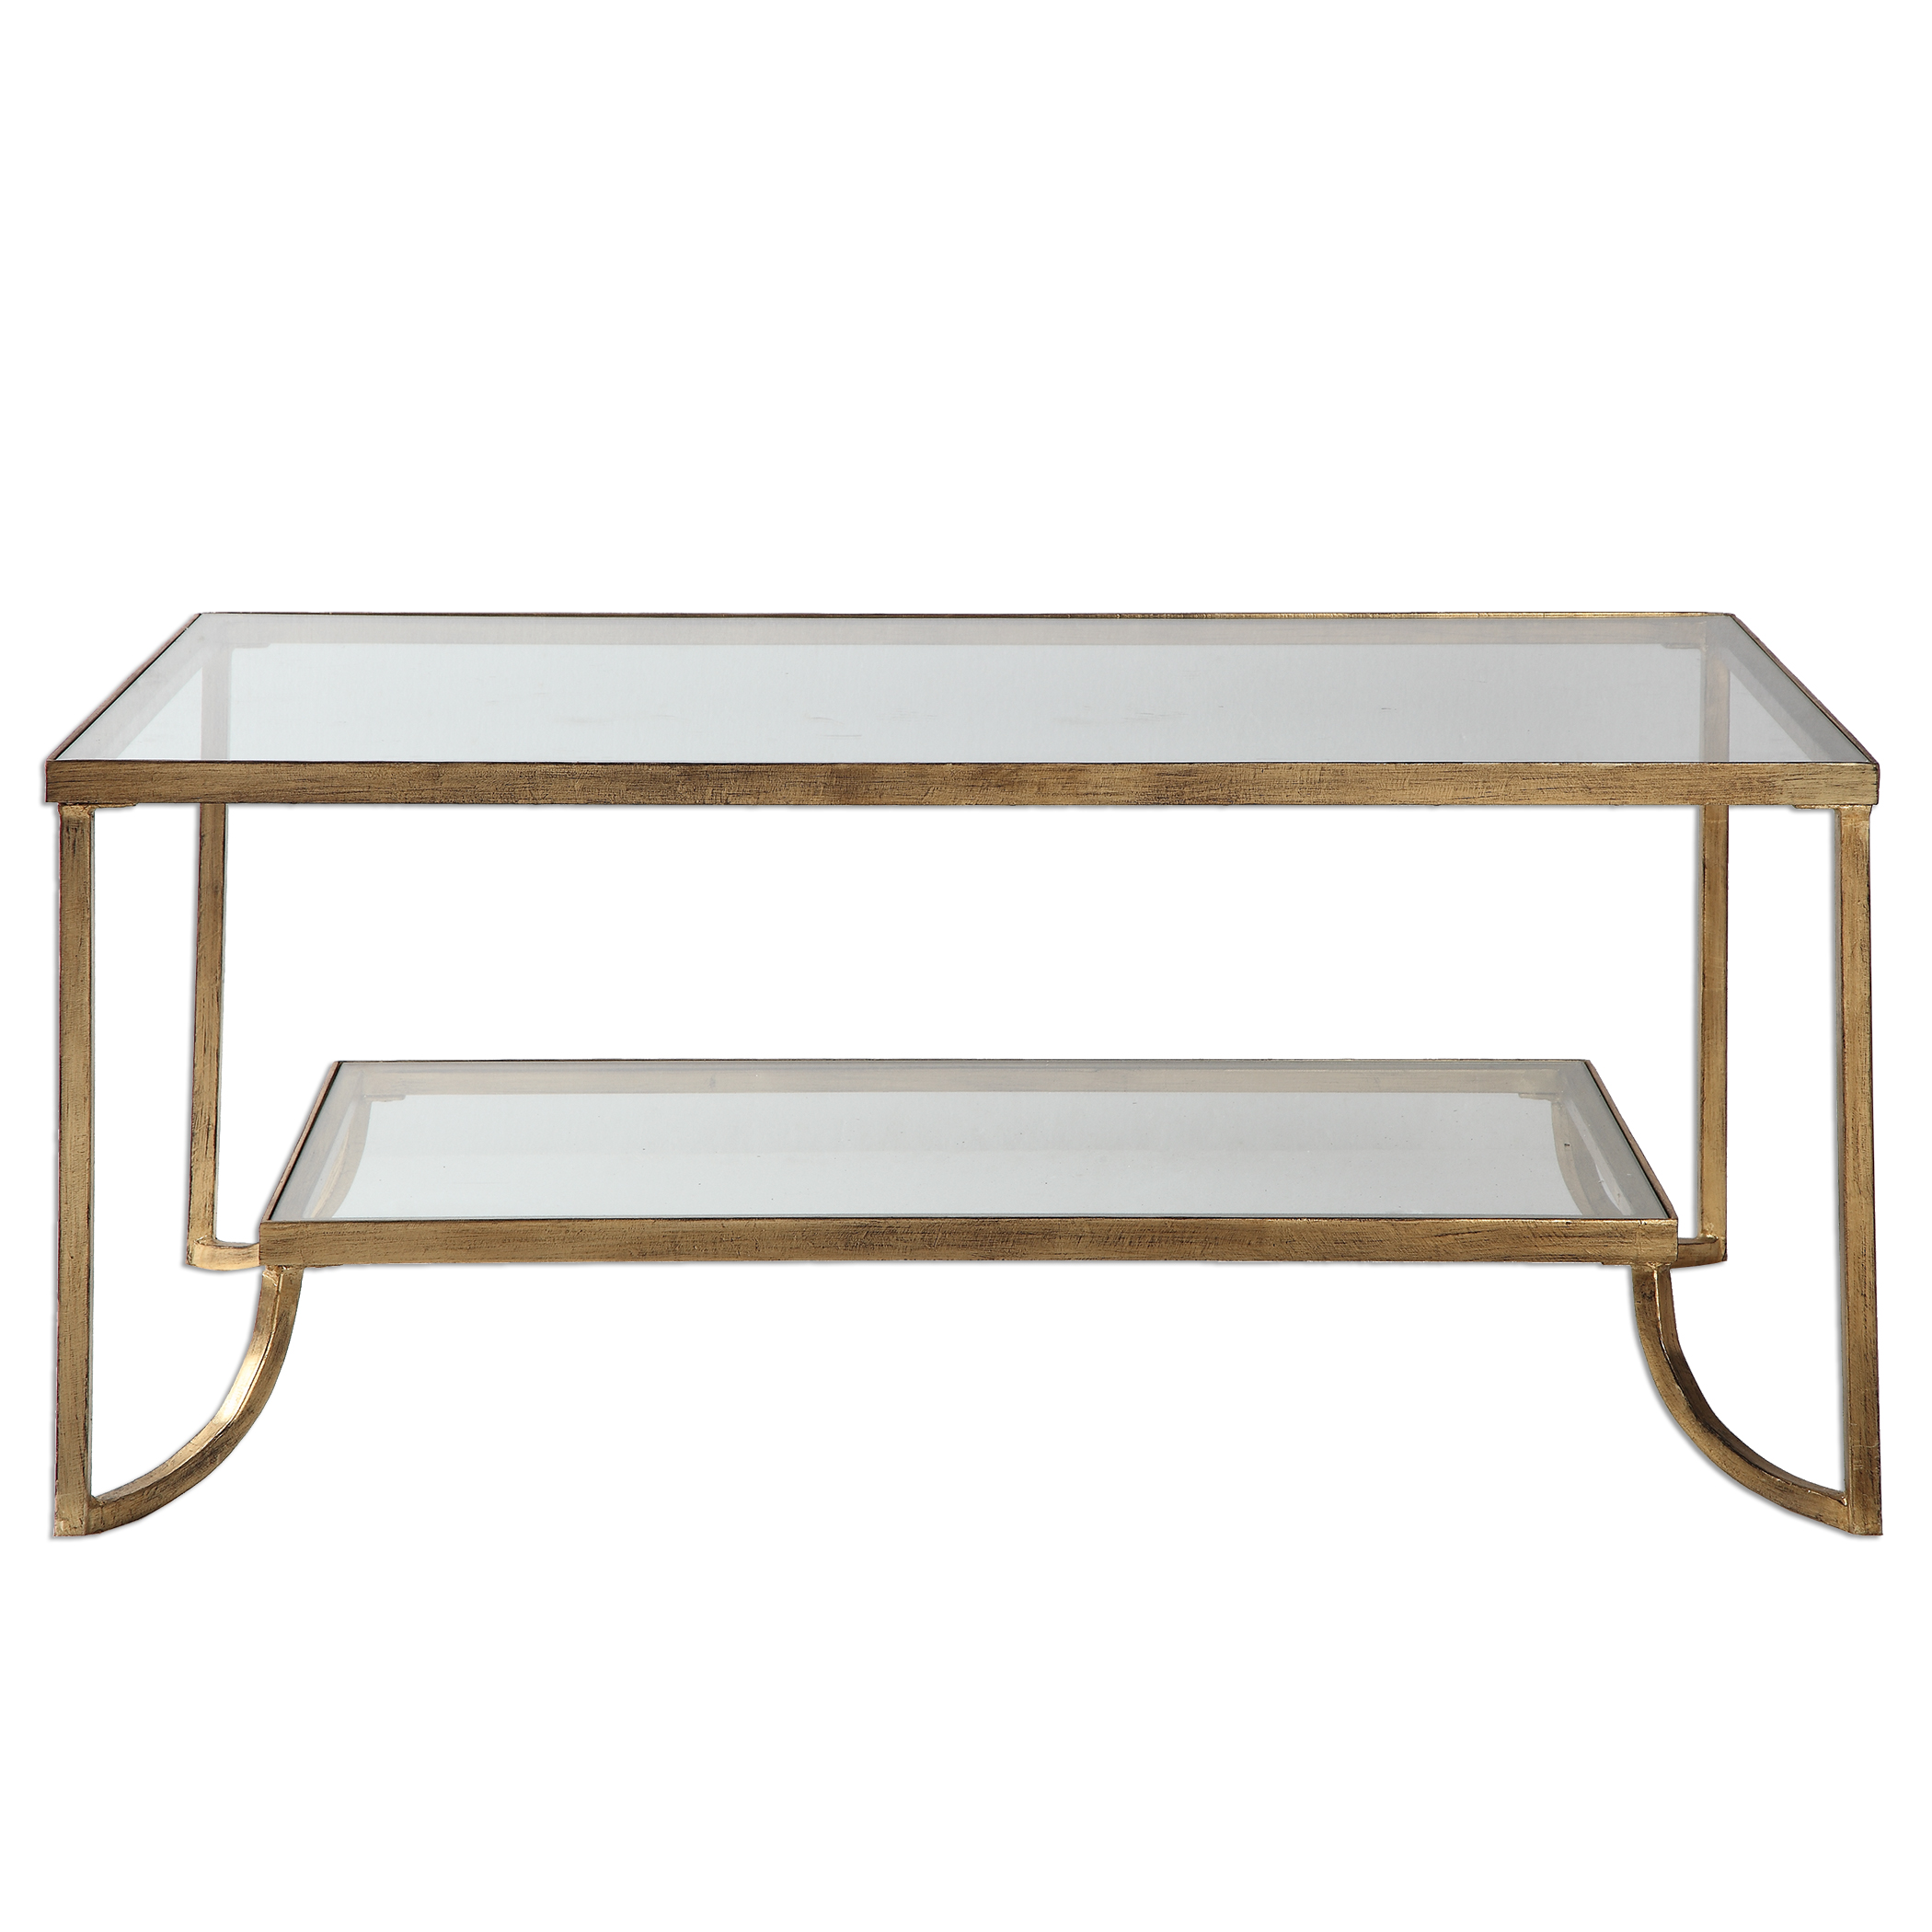 Accent Furniture - Occasional Tables Katina Gold Leaf Coffee Table by Uttermost at Reid's Furniture